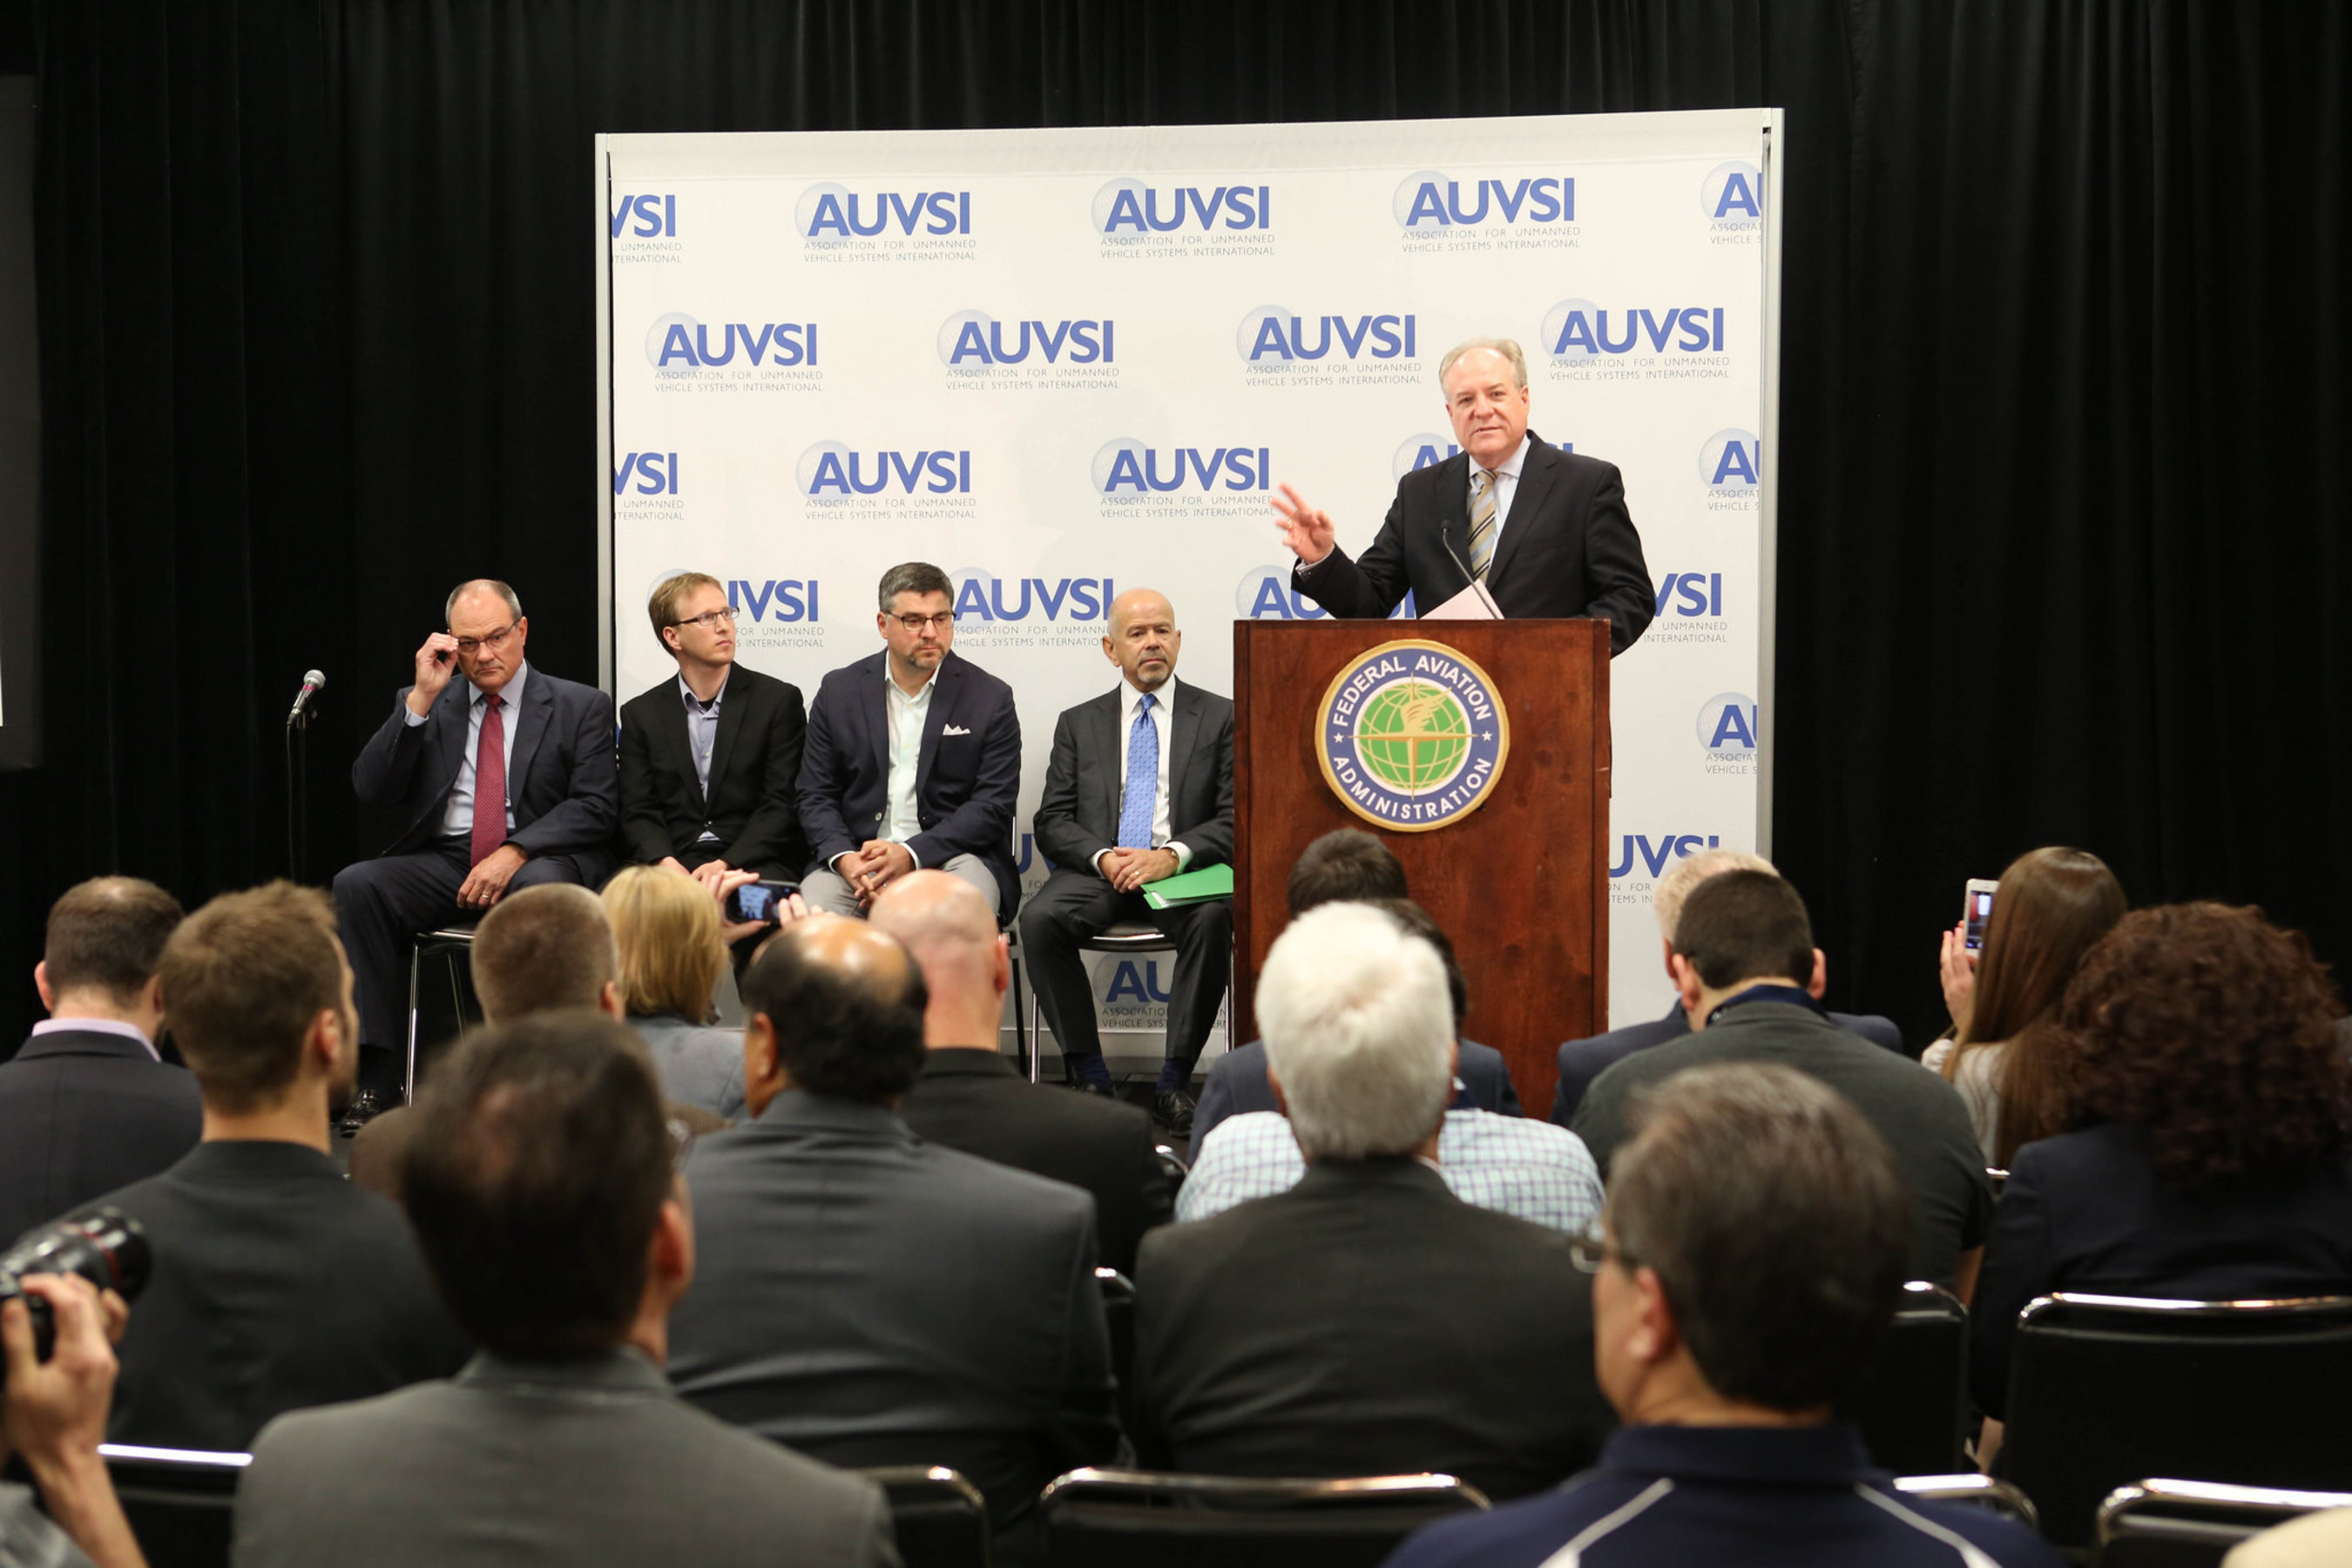 At last year's conference, FAA Administrator Michael Huerta made several important announcements regarding the advancement of integrating UAS into the national airspace, including the development of an airspace data app and a the Pathfinder research program for expanded operations.